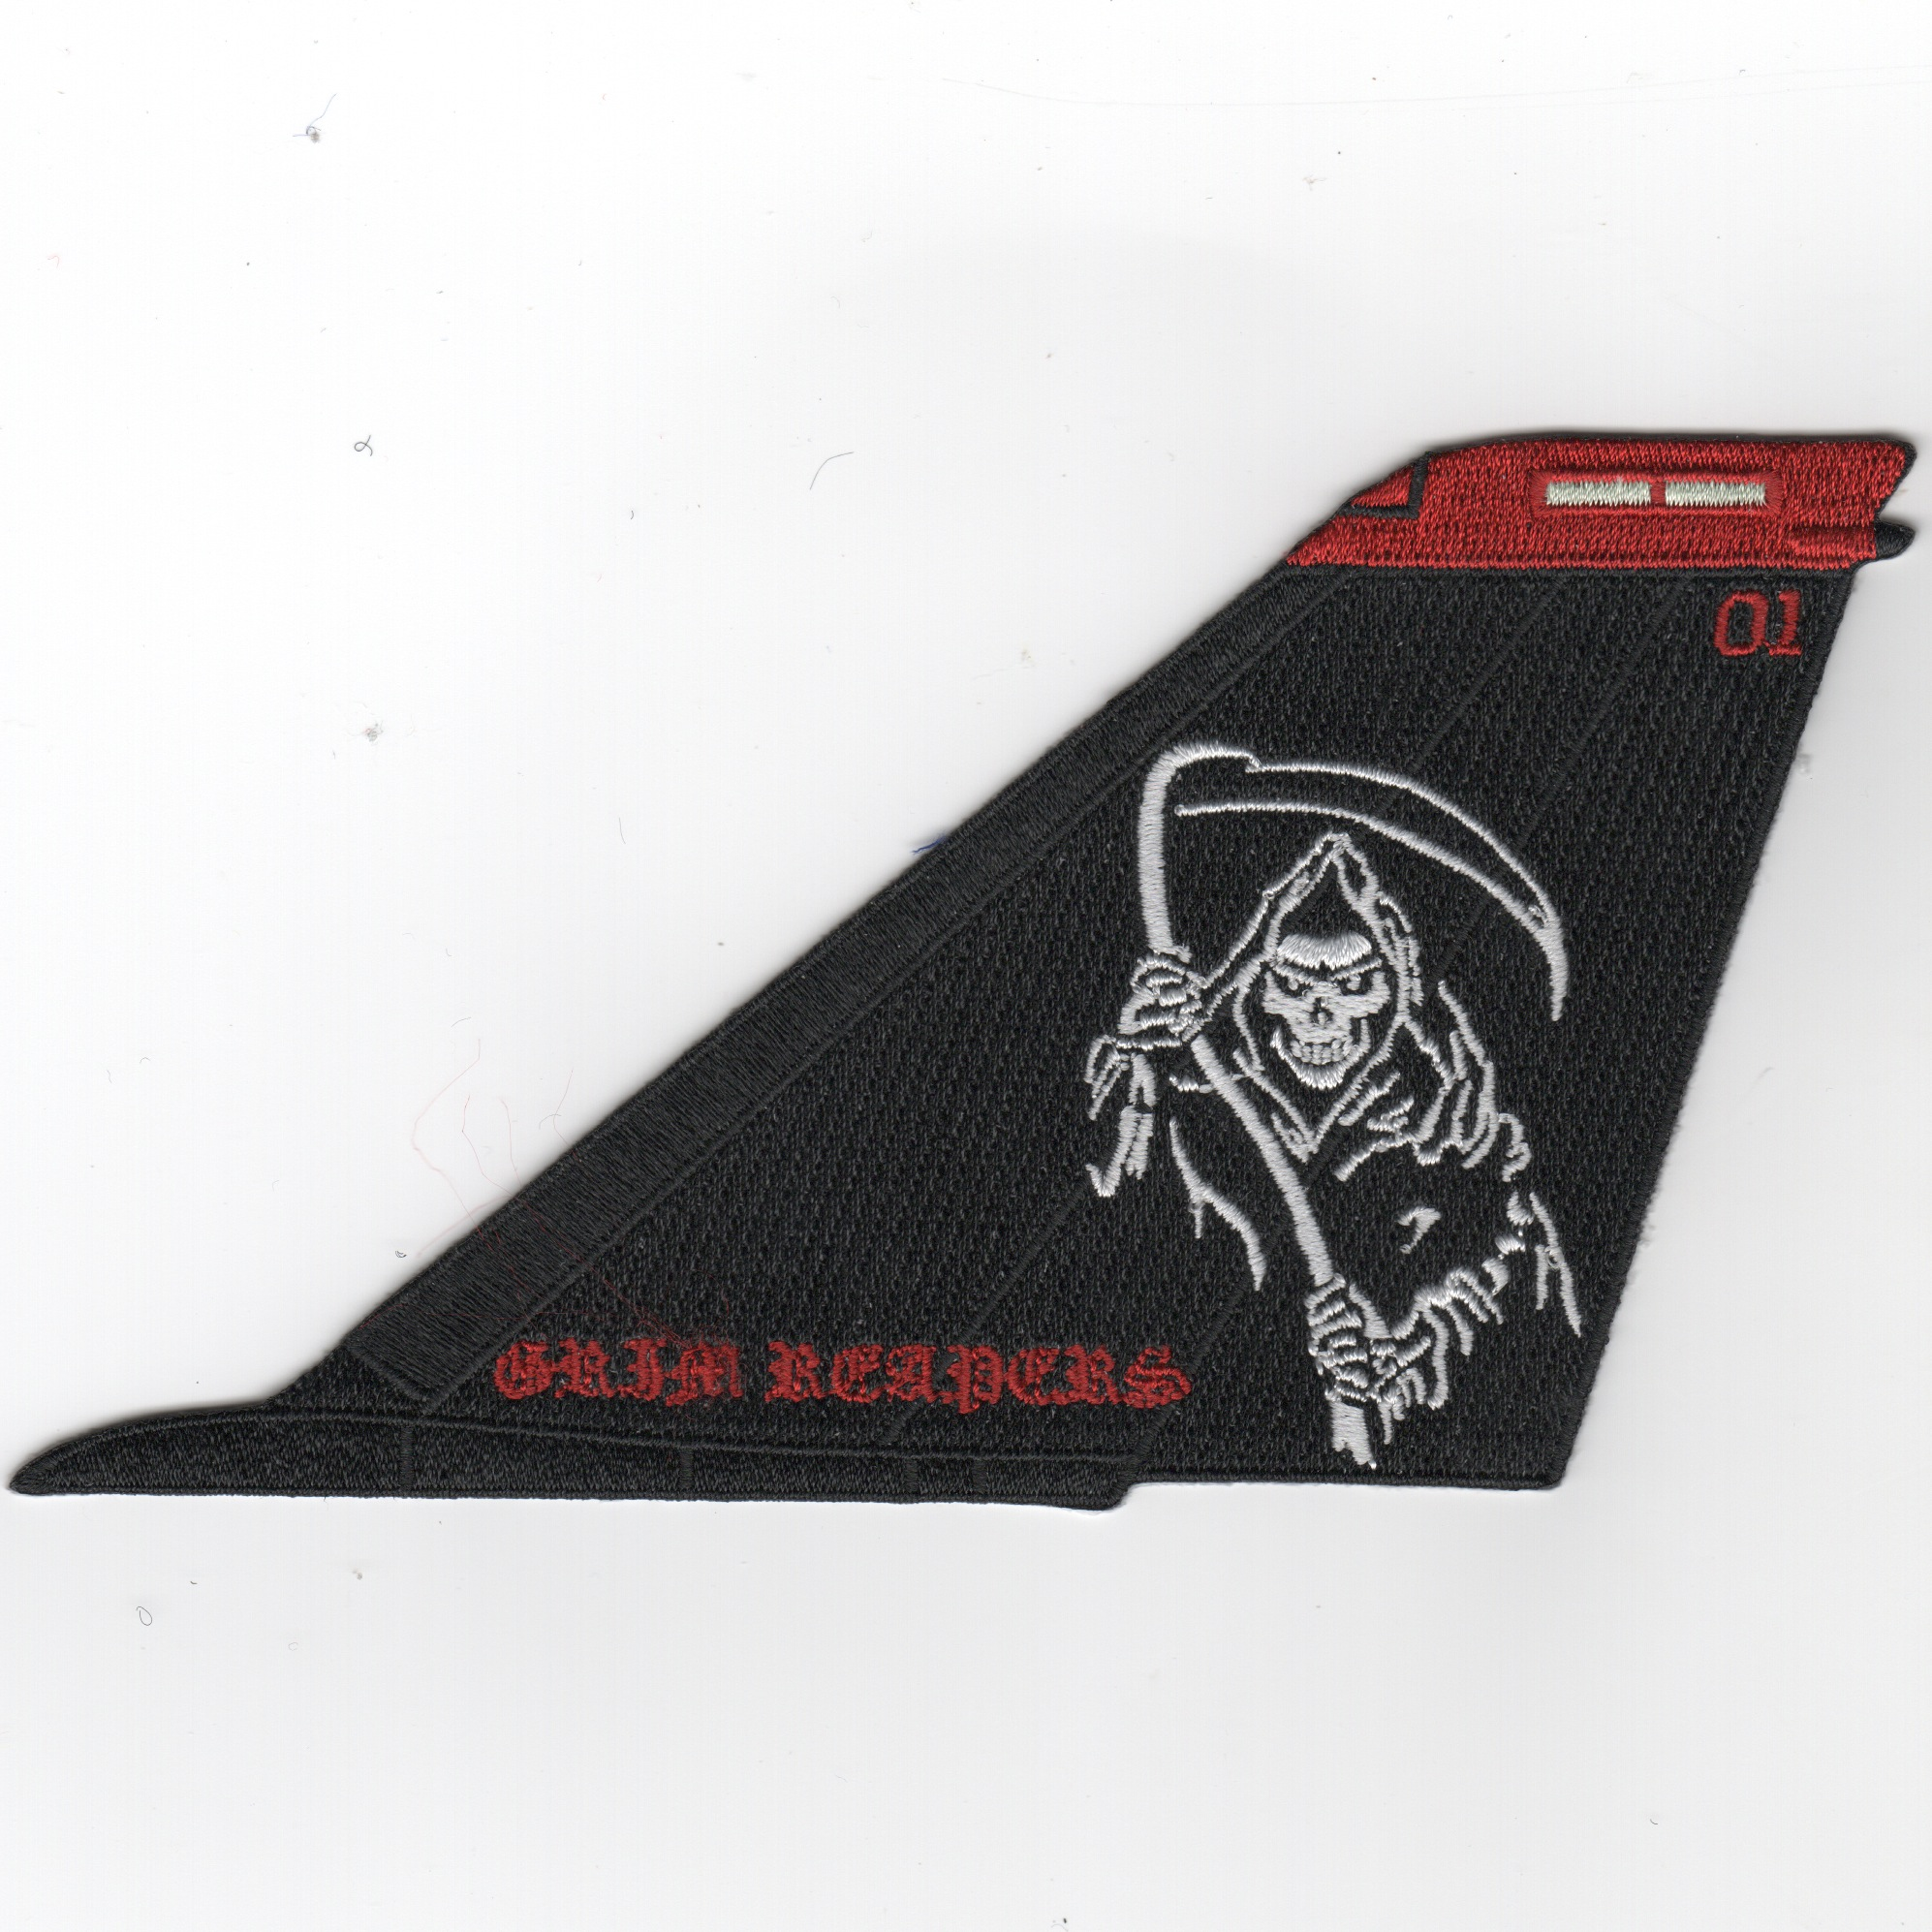 VF-101 F-14 Tail (Black/White-Moe/No Text)